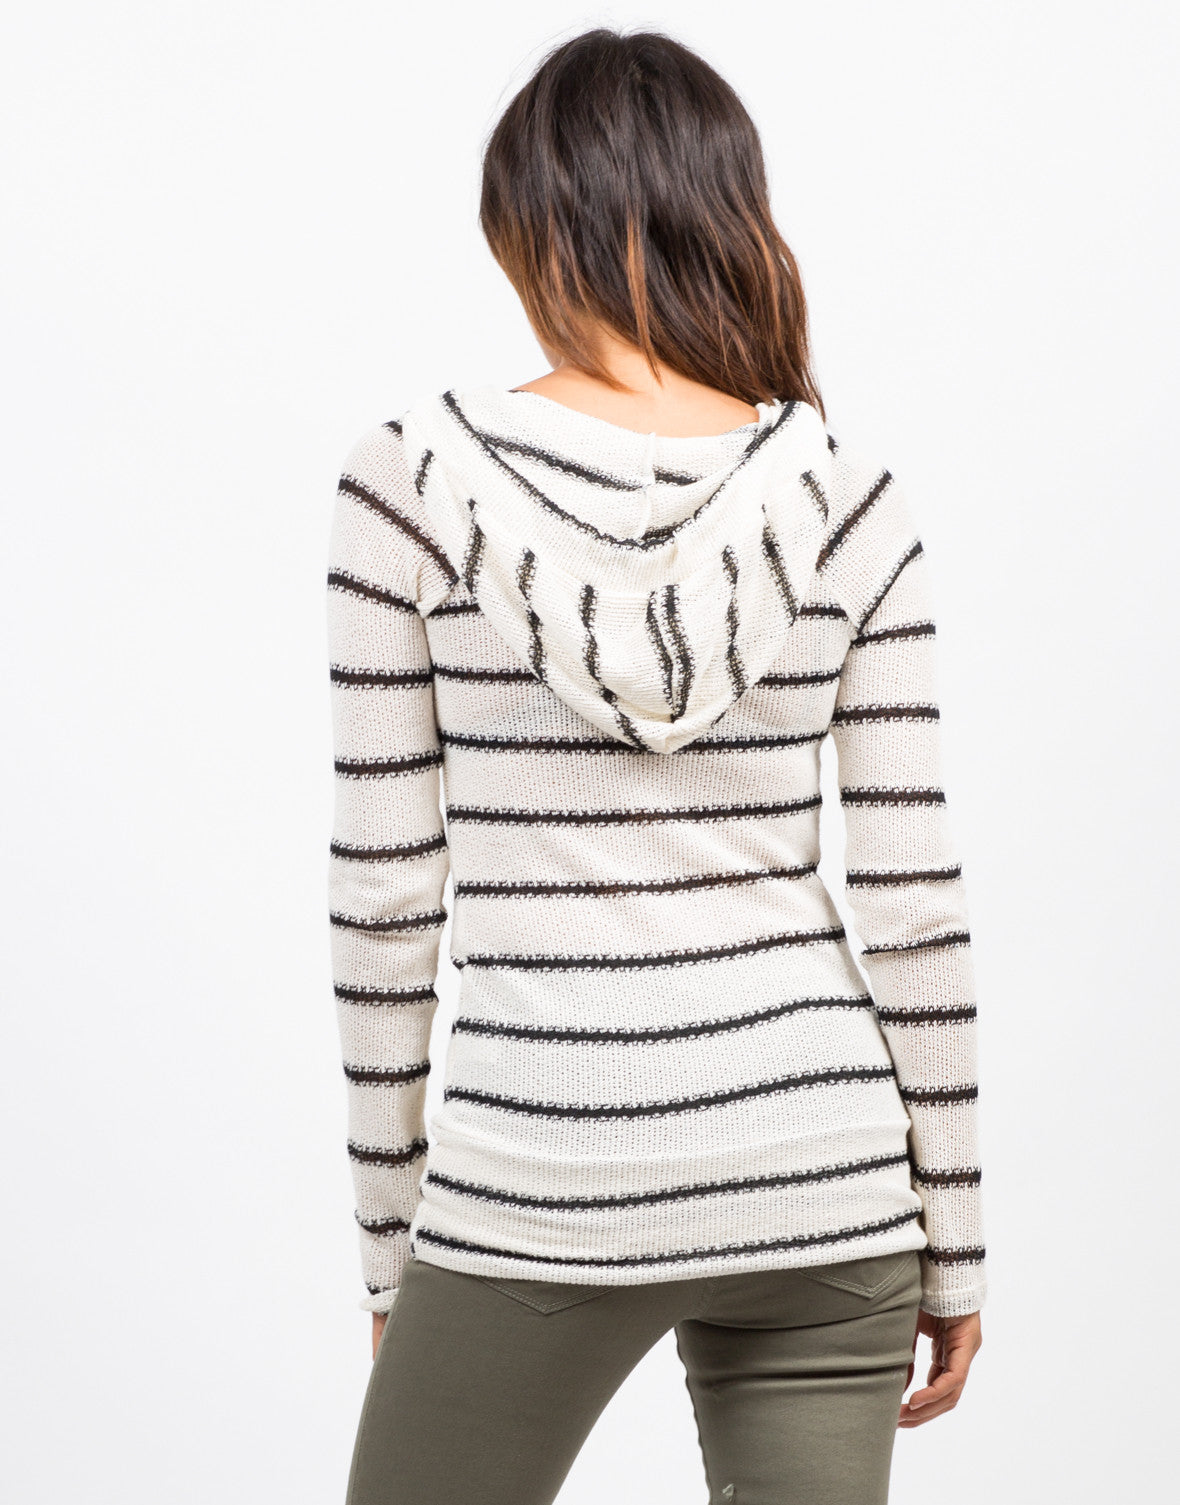 Back View of Striped Hoodie Sweater Top